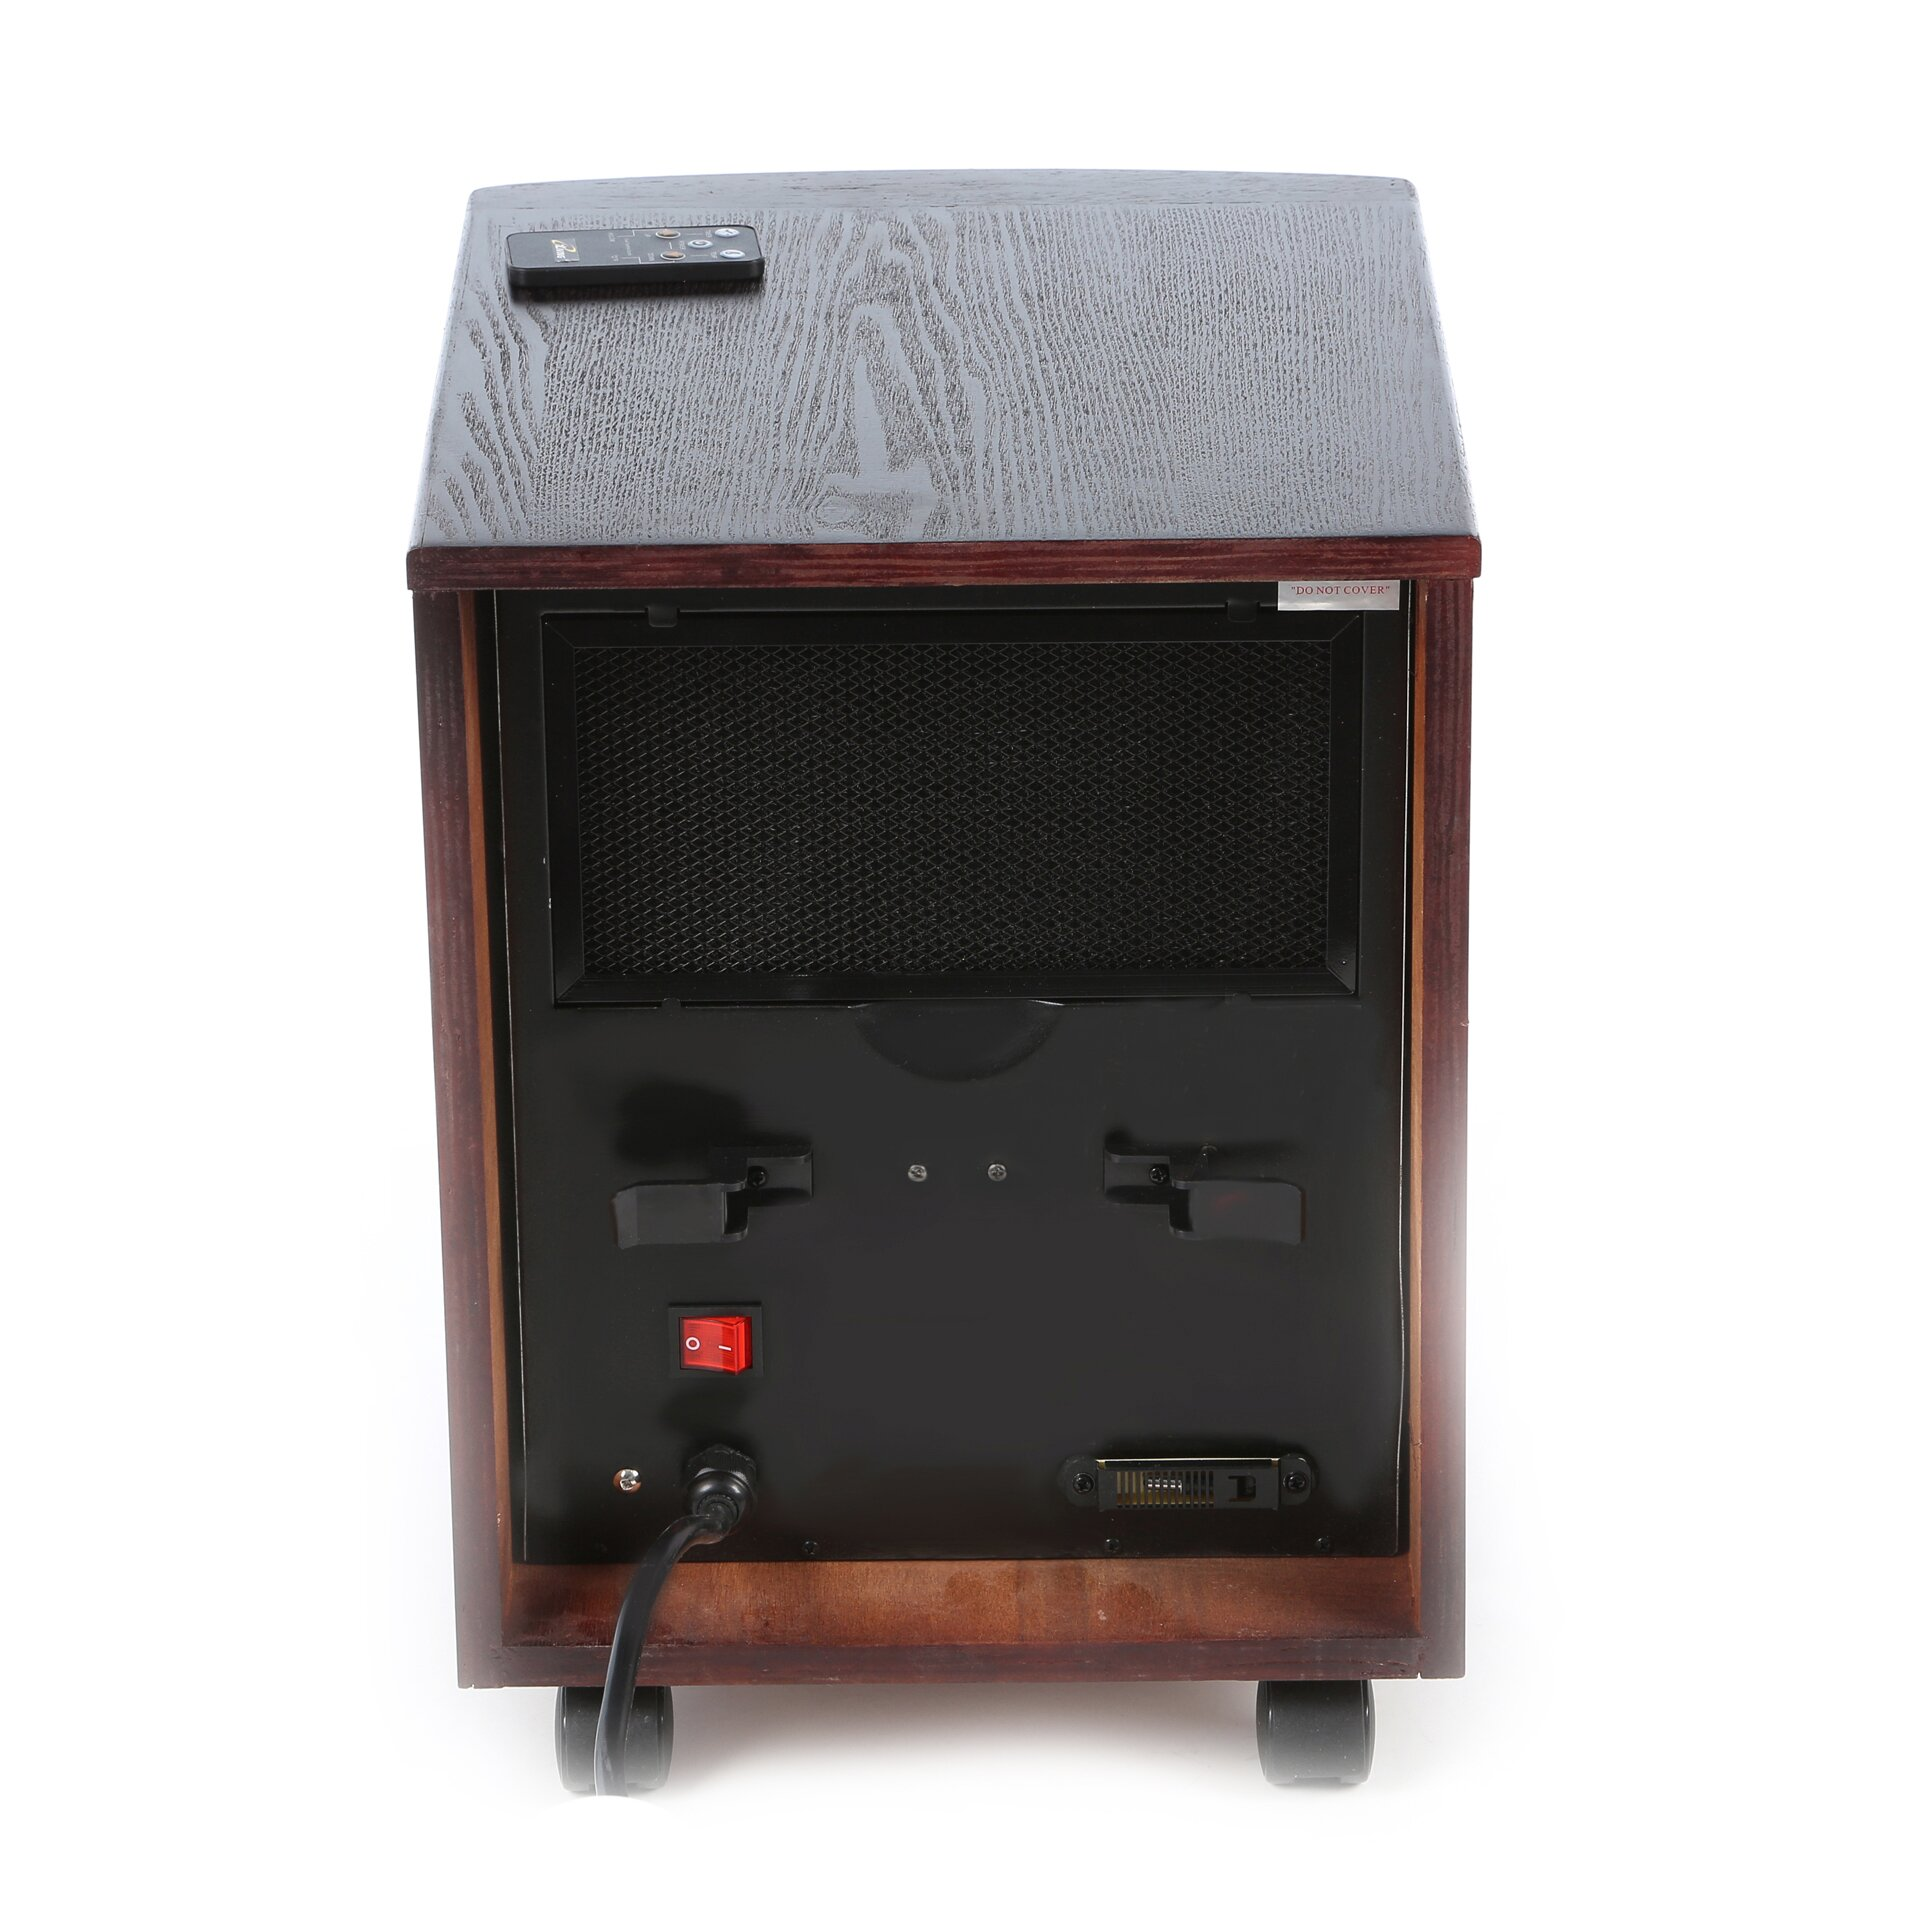 iLIVING 1,500 Watt Portable Electric Infrared Cabinet Heater & Reviews